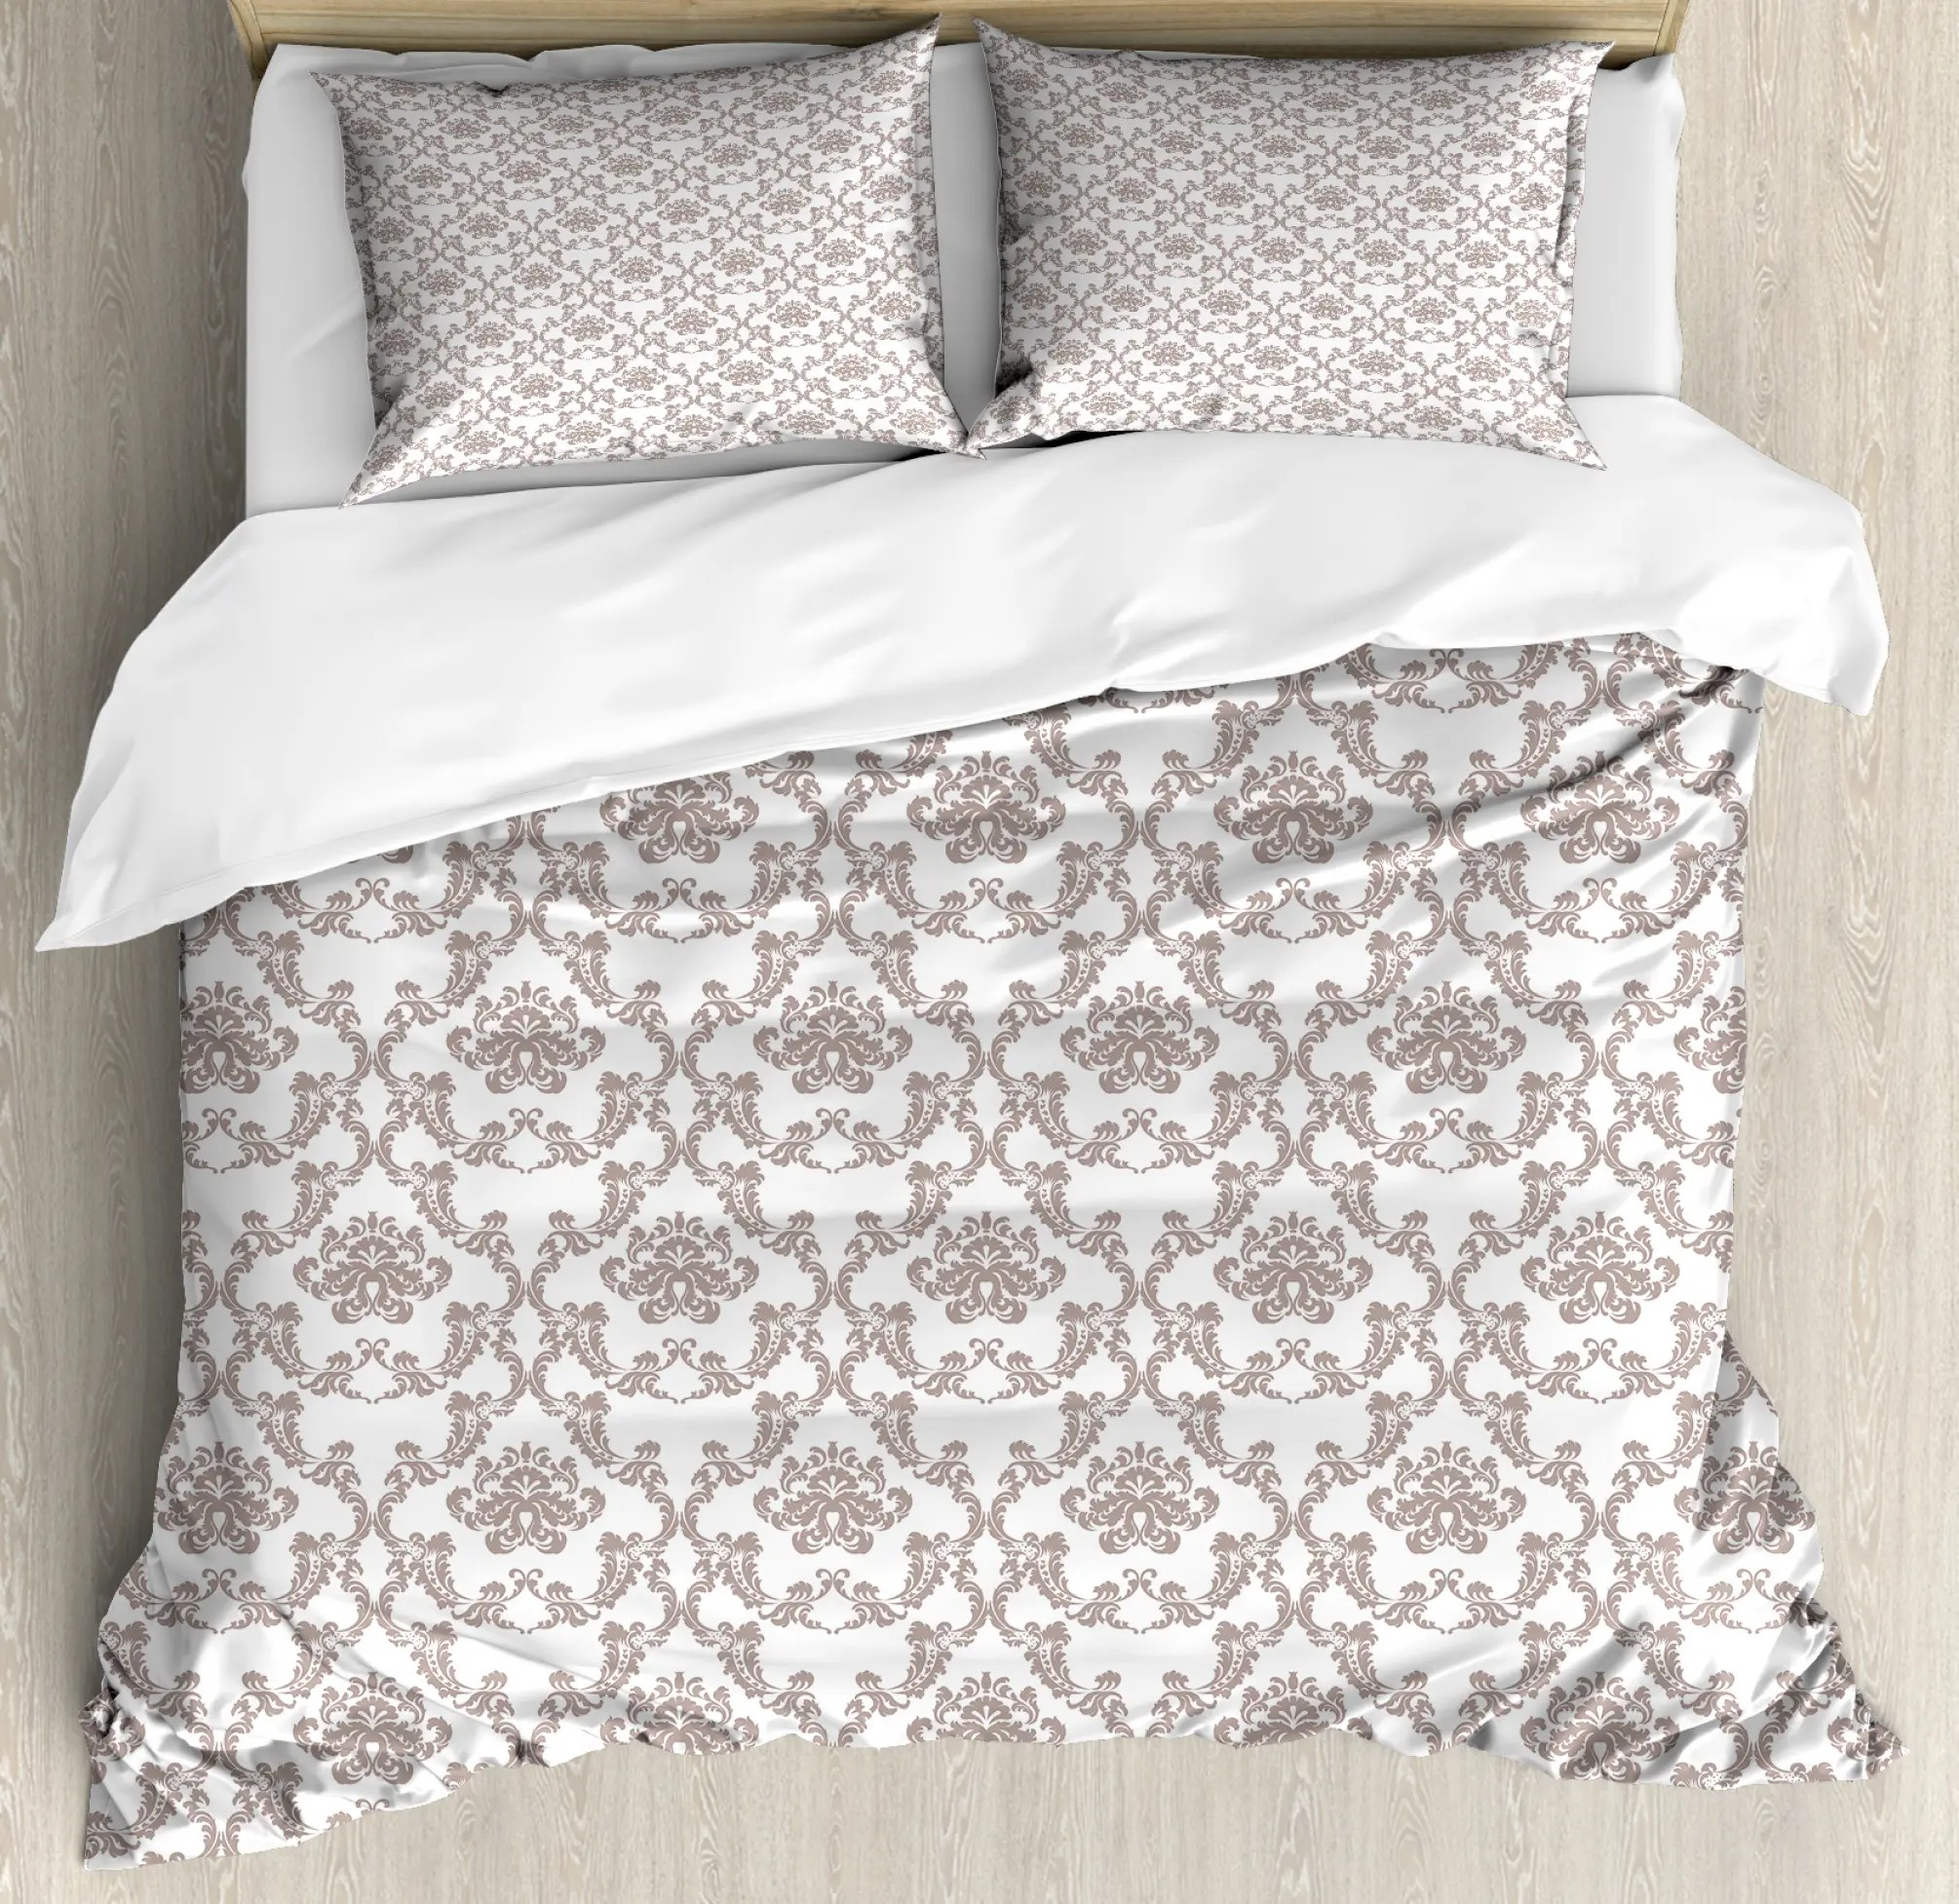 Damask Duvet Taupe Colored Damask Duvet Cover Set